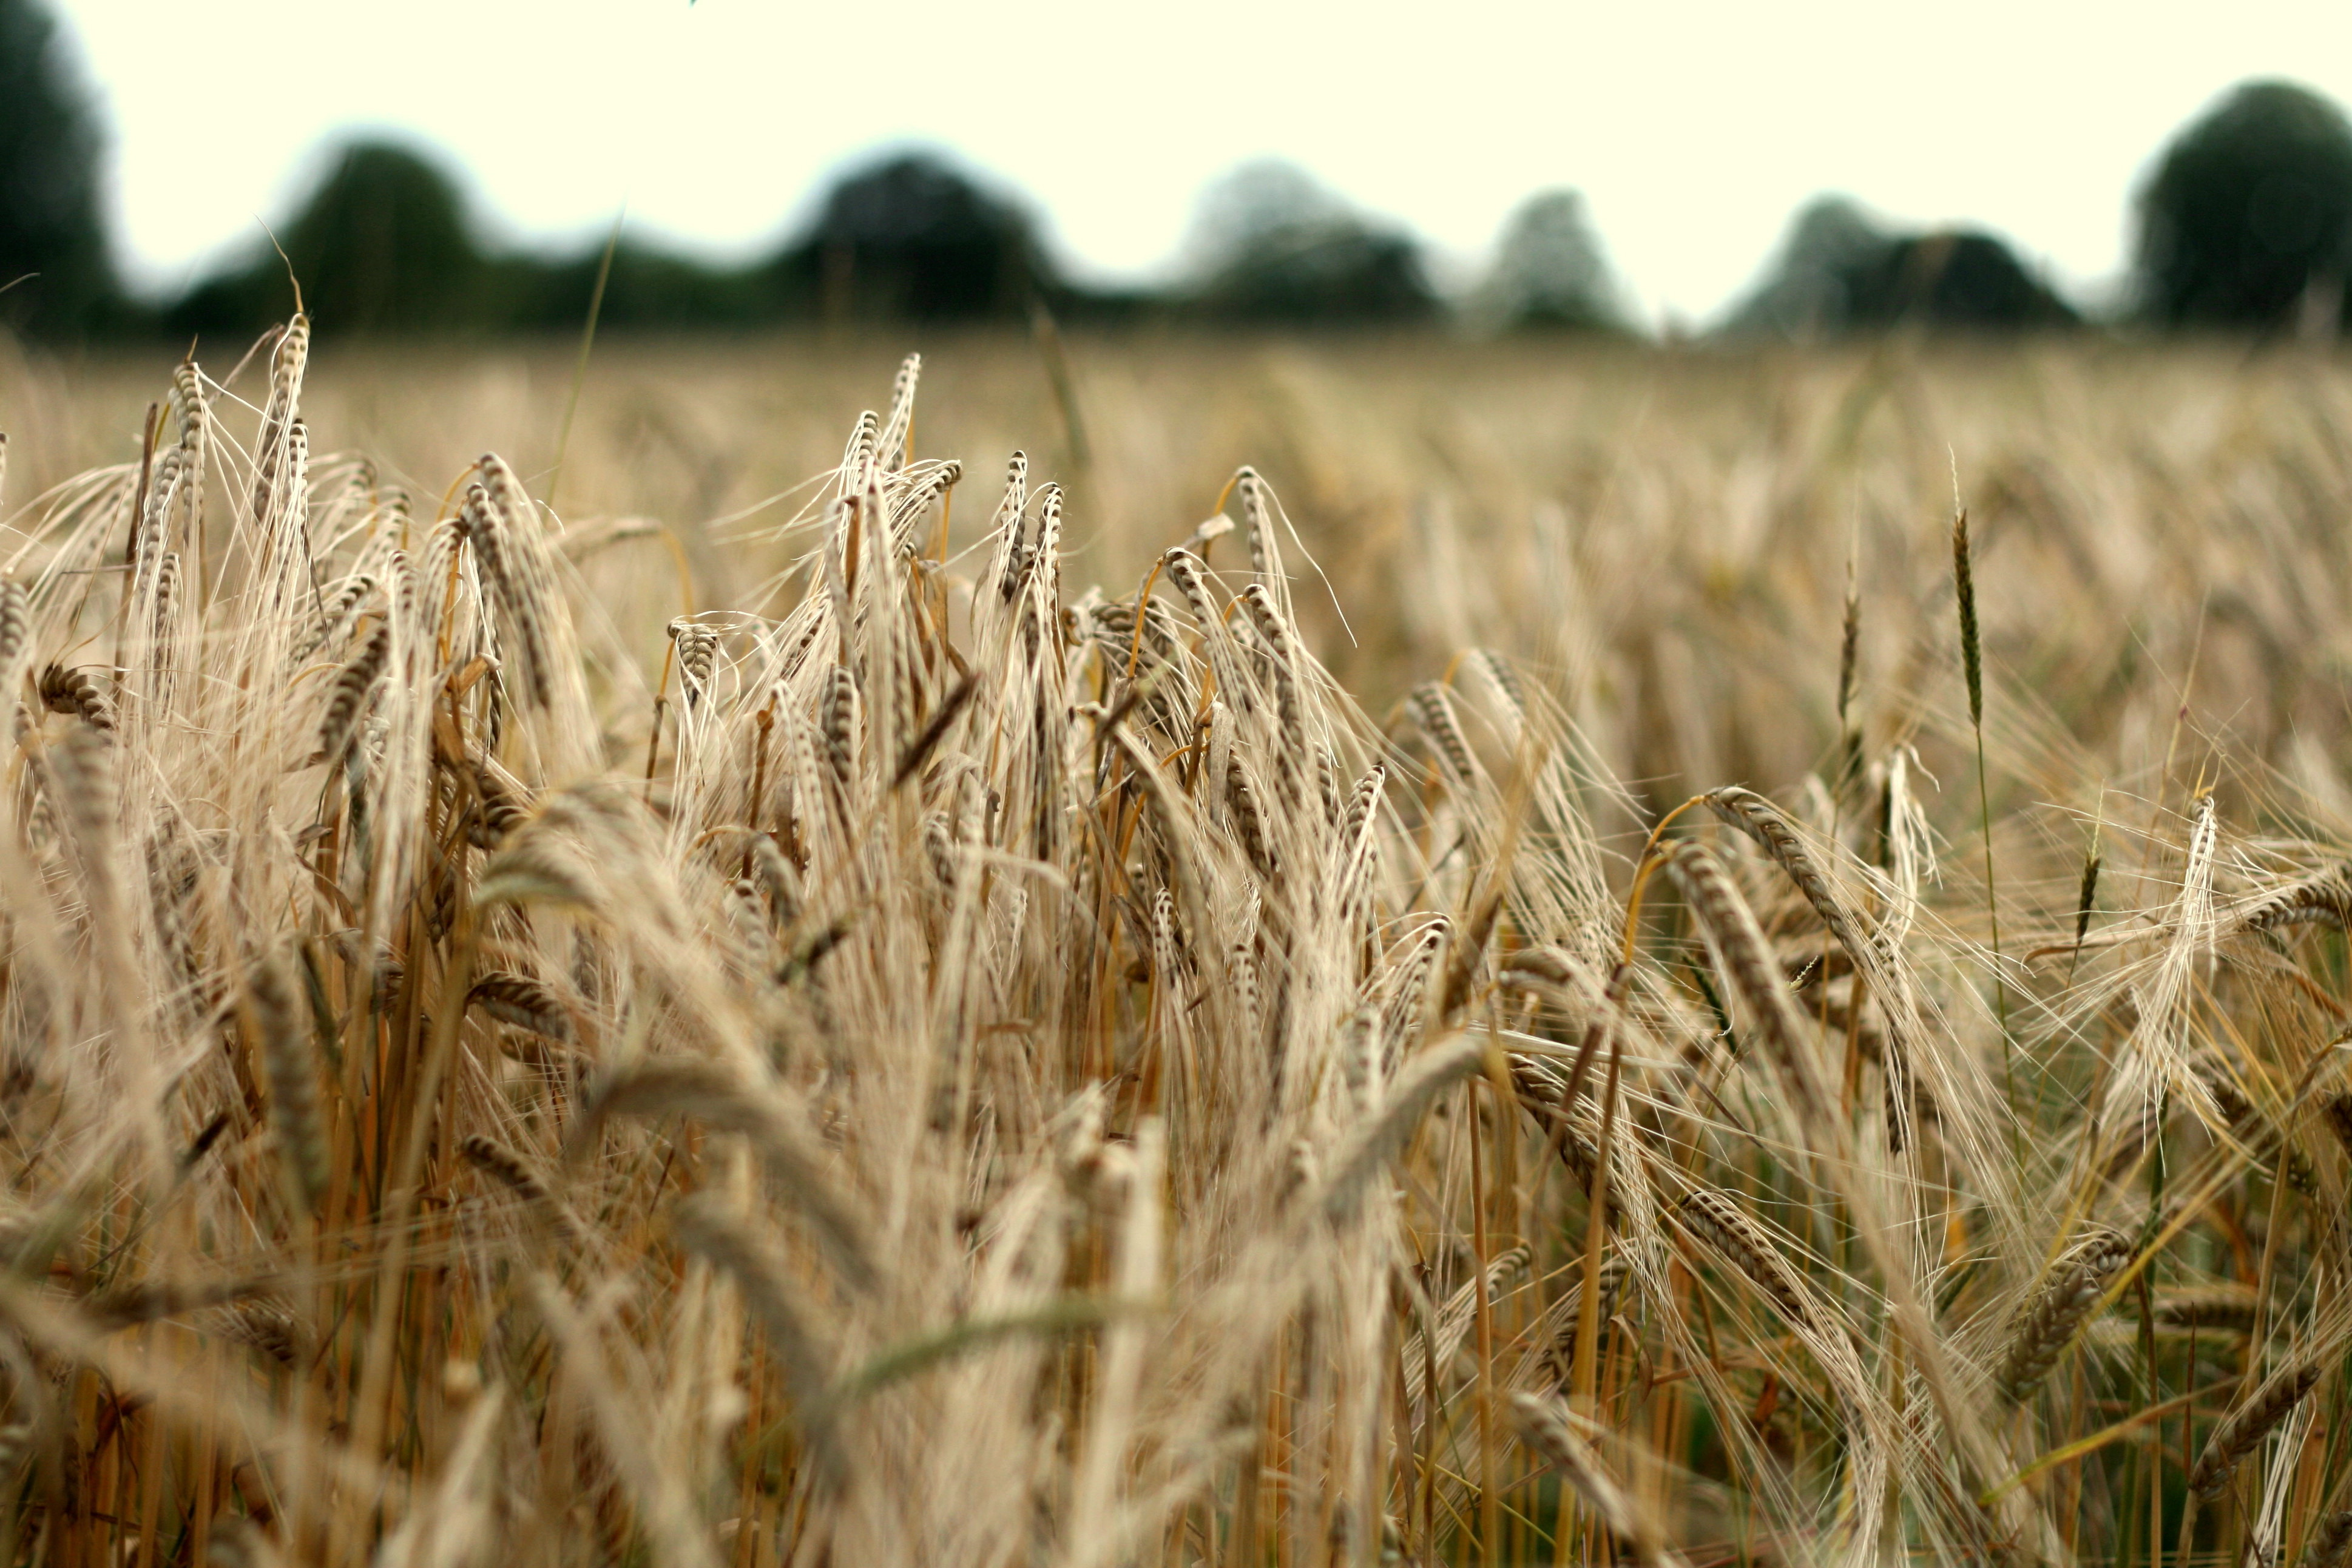 Wheat bending in the wind